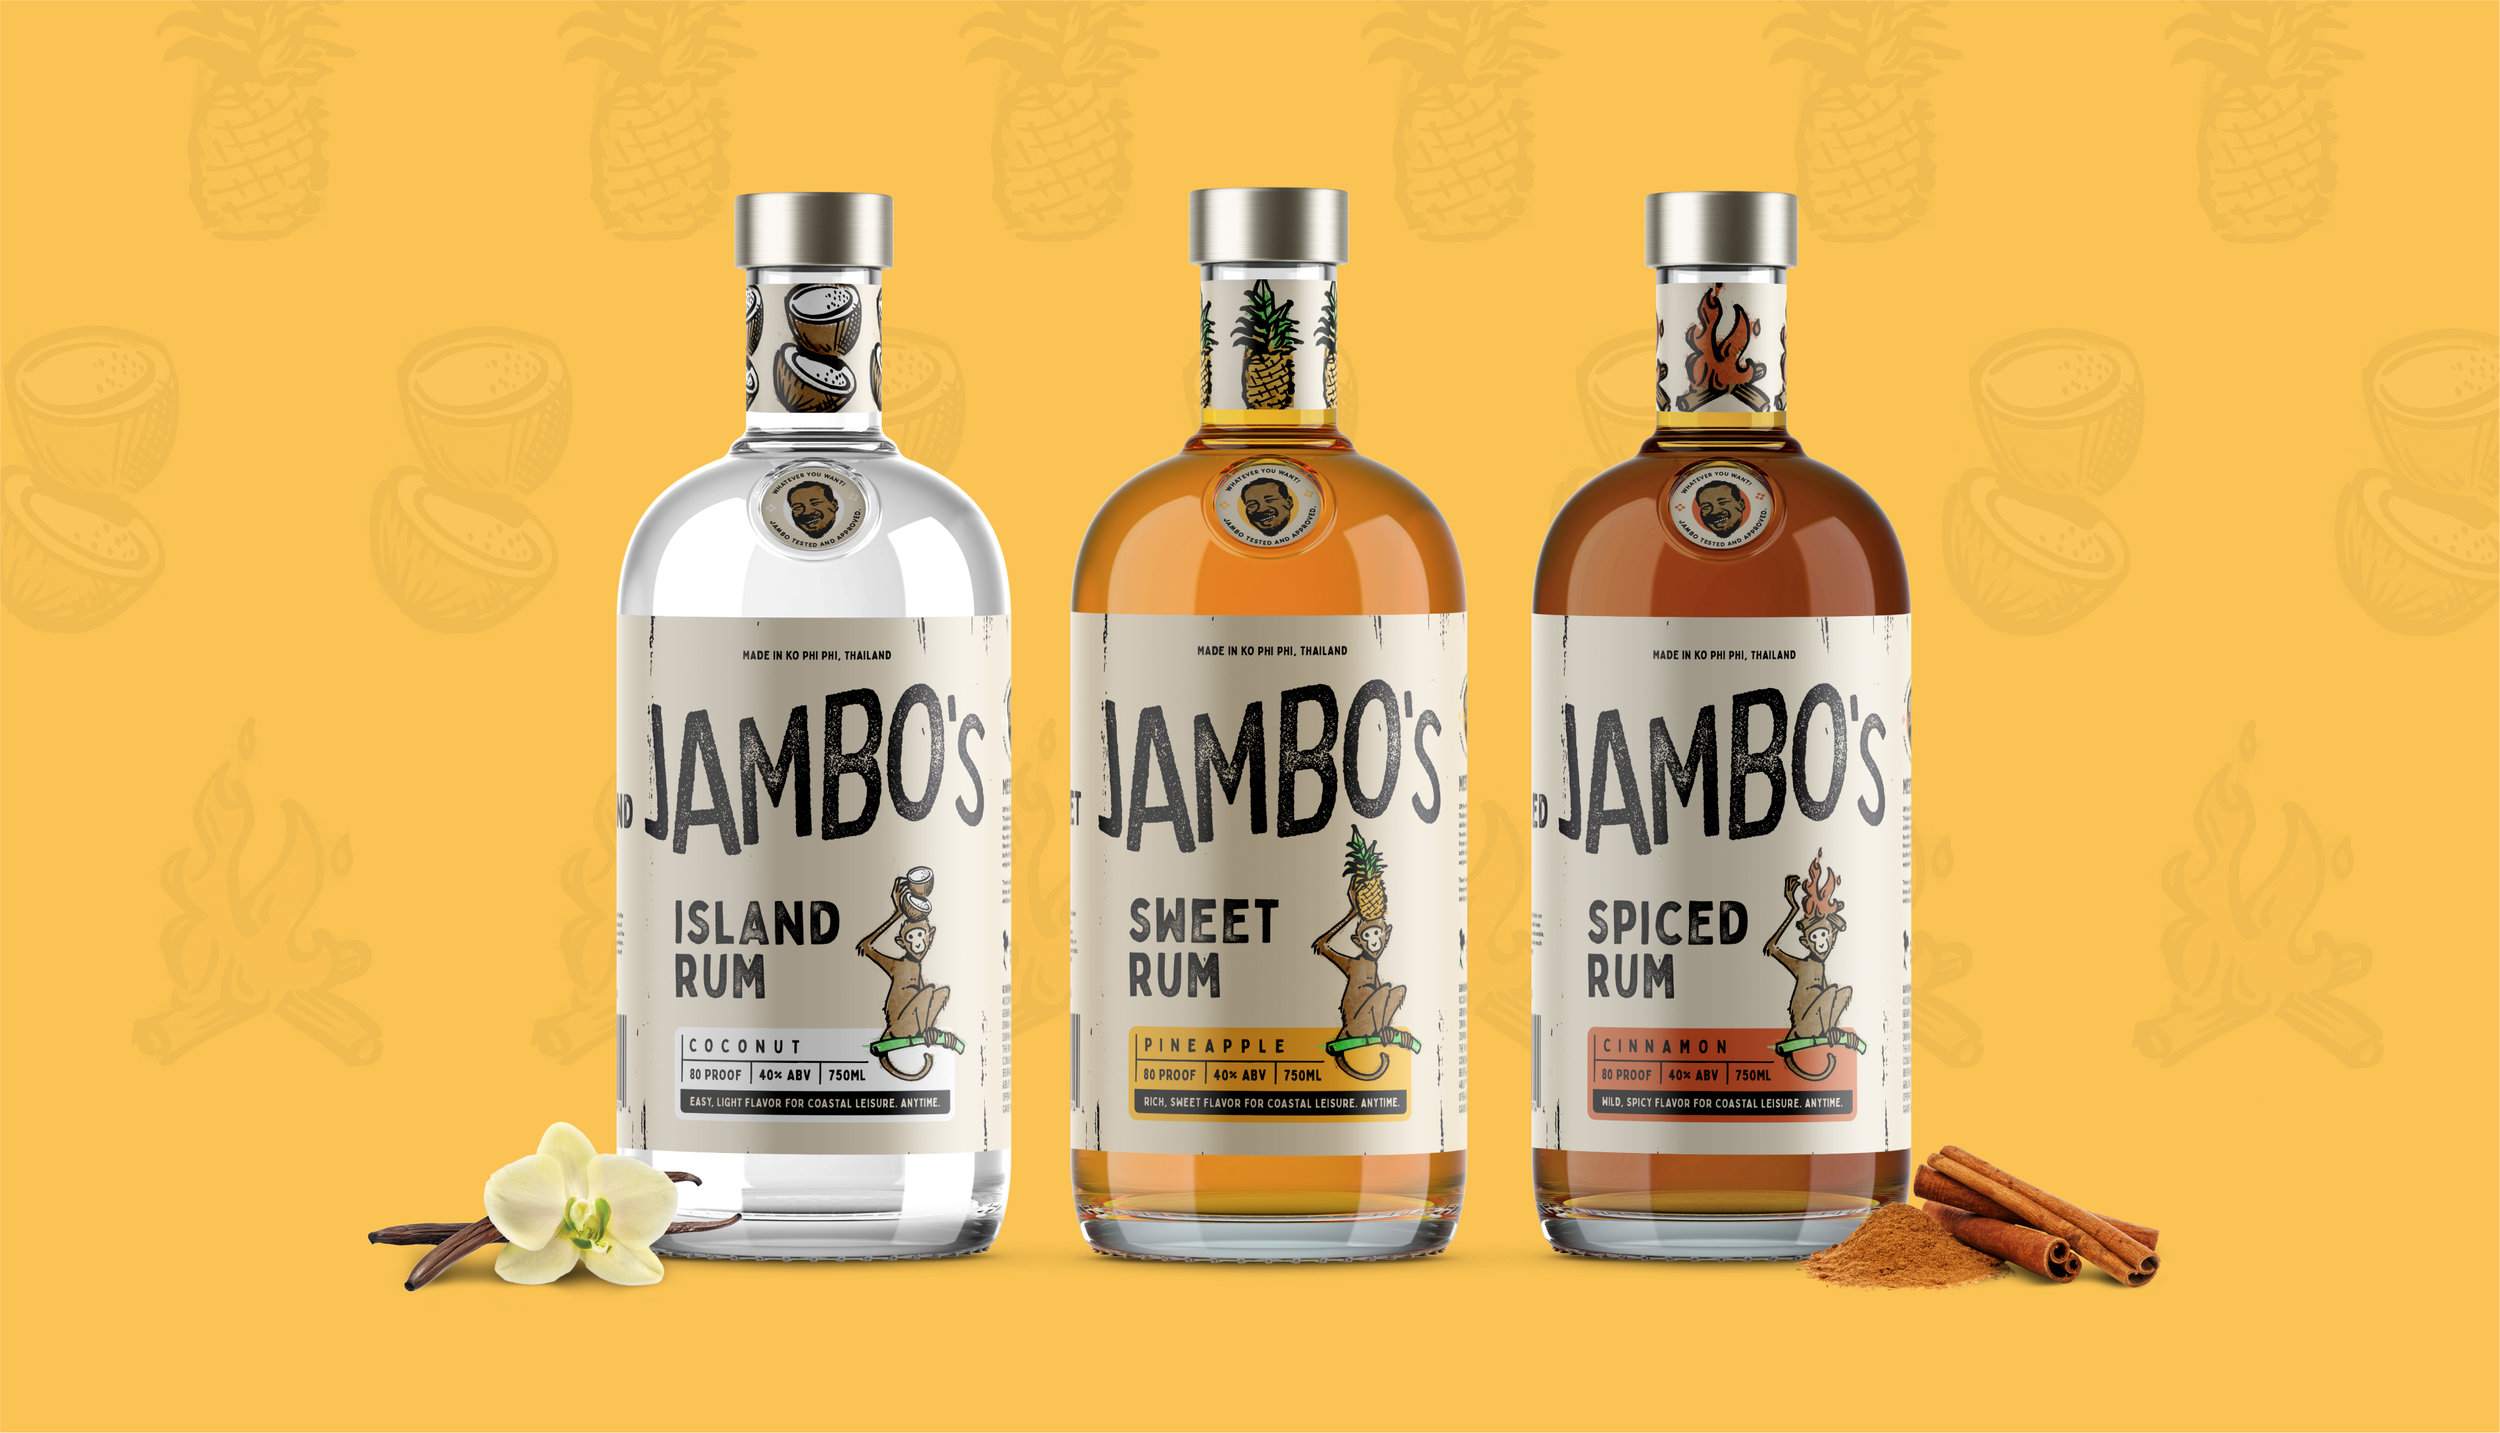 Jambos_Rum_Wakeen_Design_Co-06.jpg